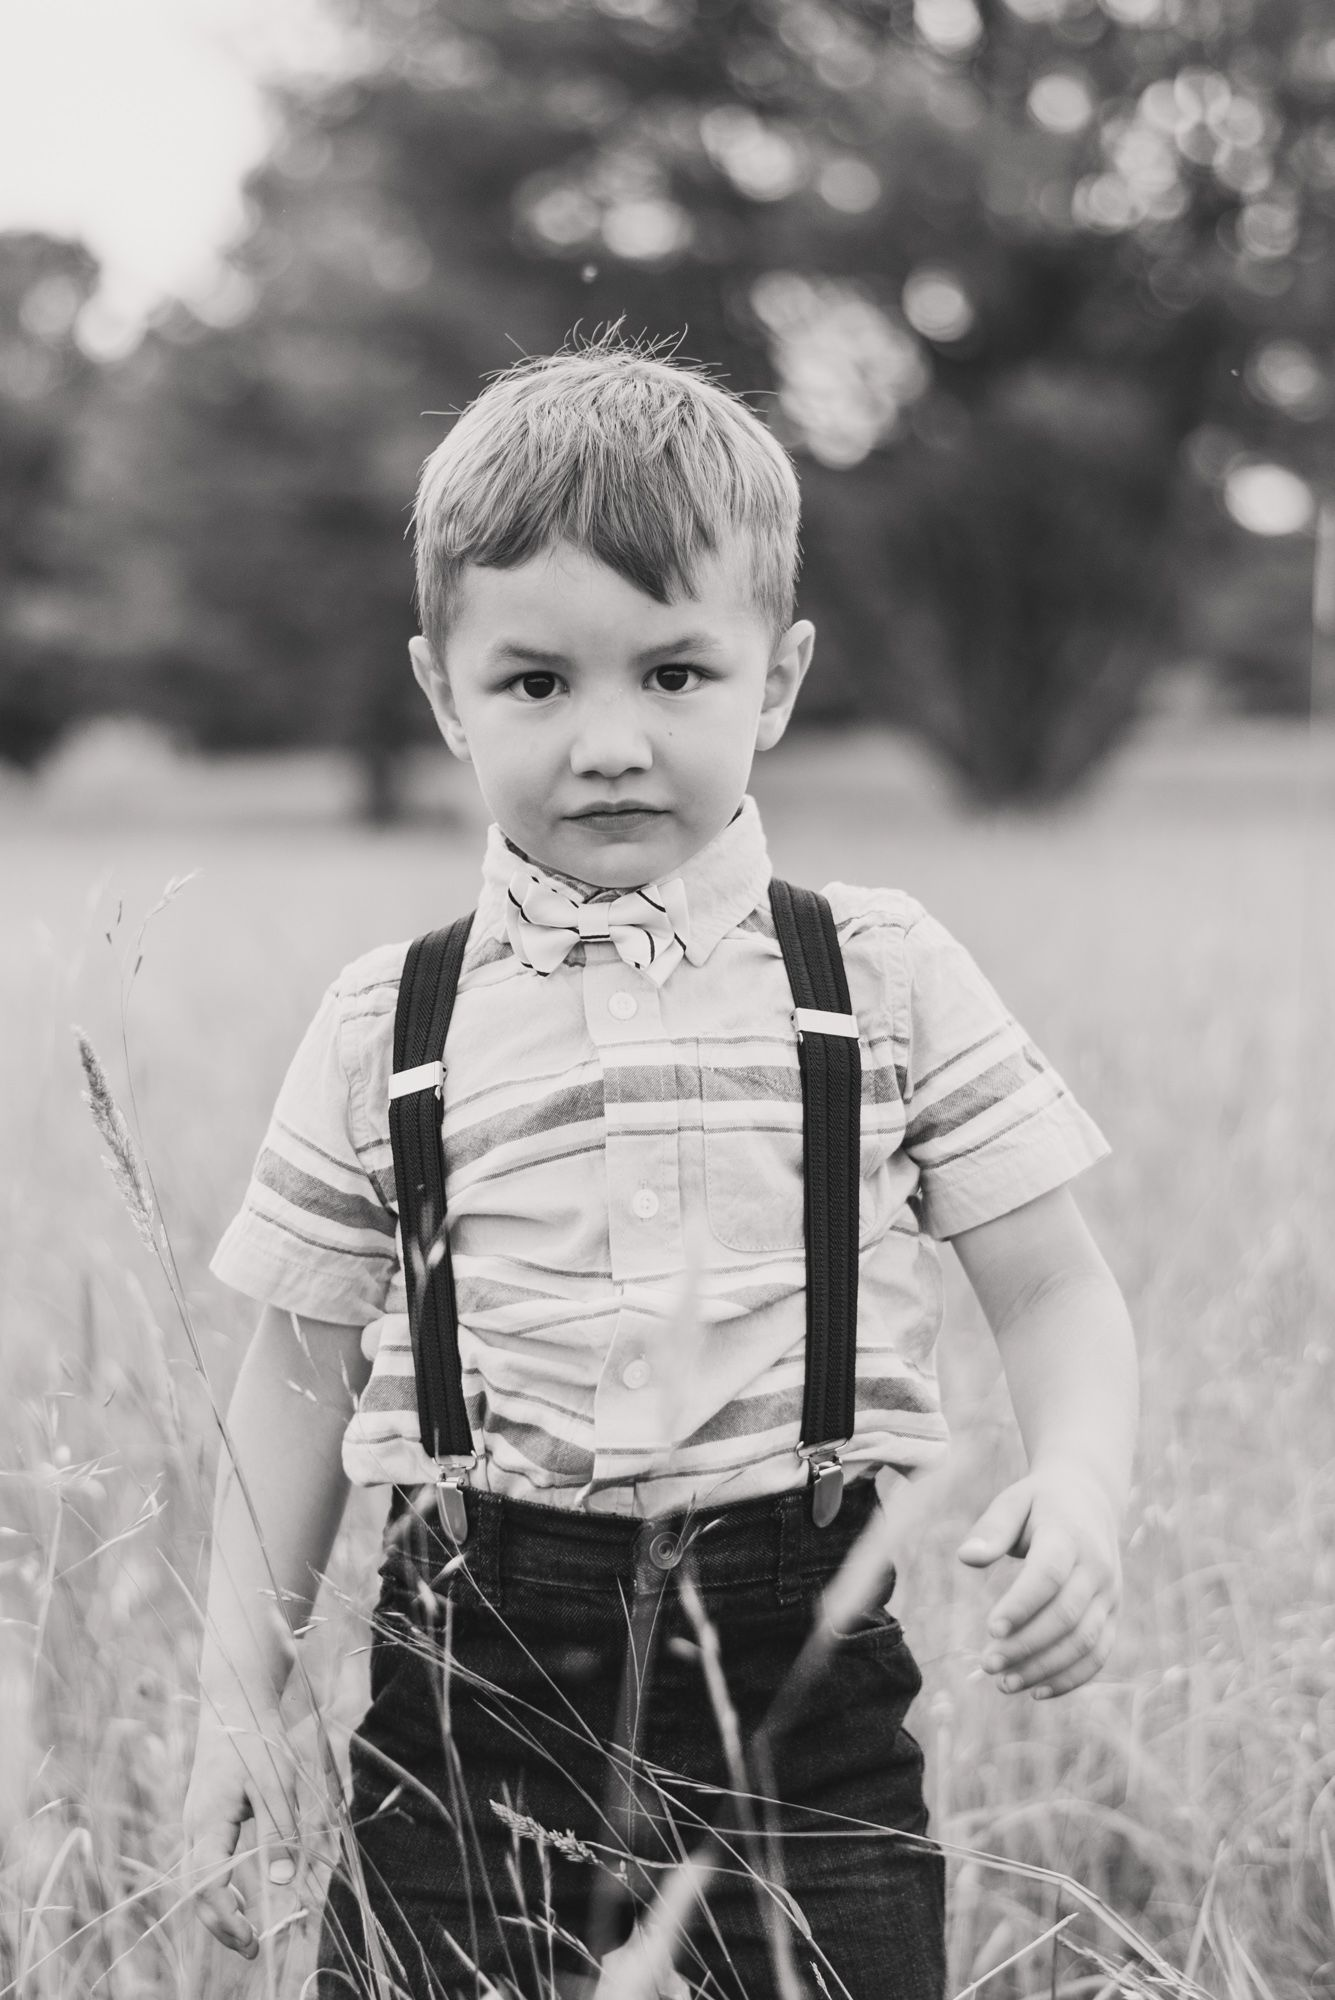 Little boy in suspenders with somber expression in field in black and white in Clarion Pennsylvania